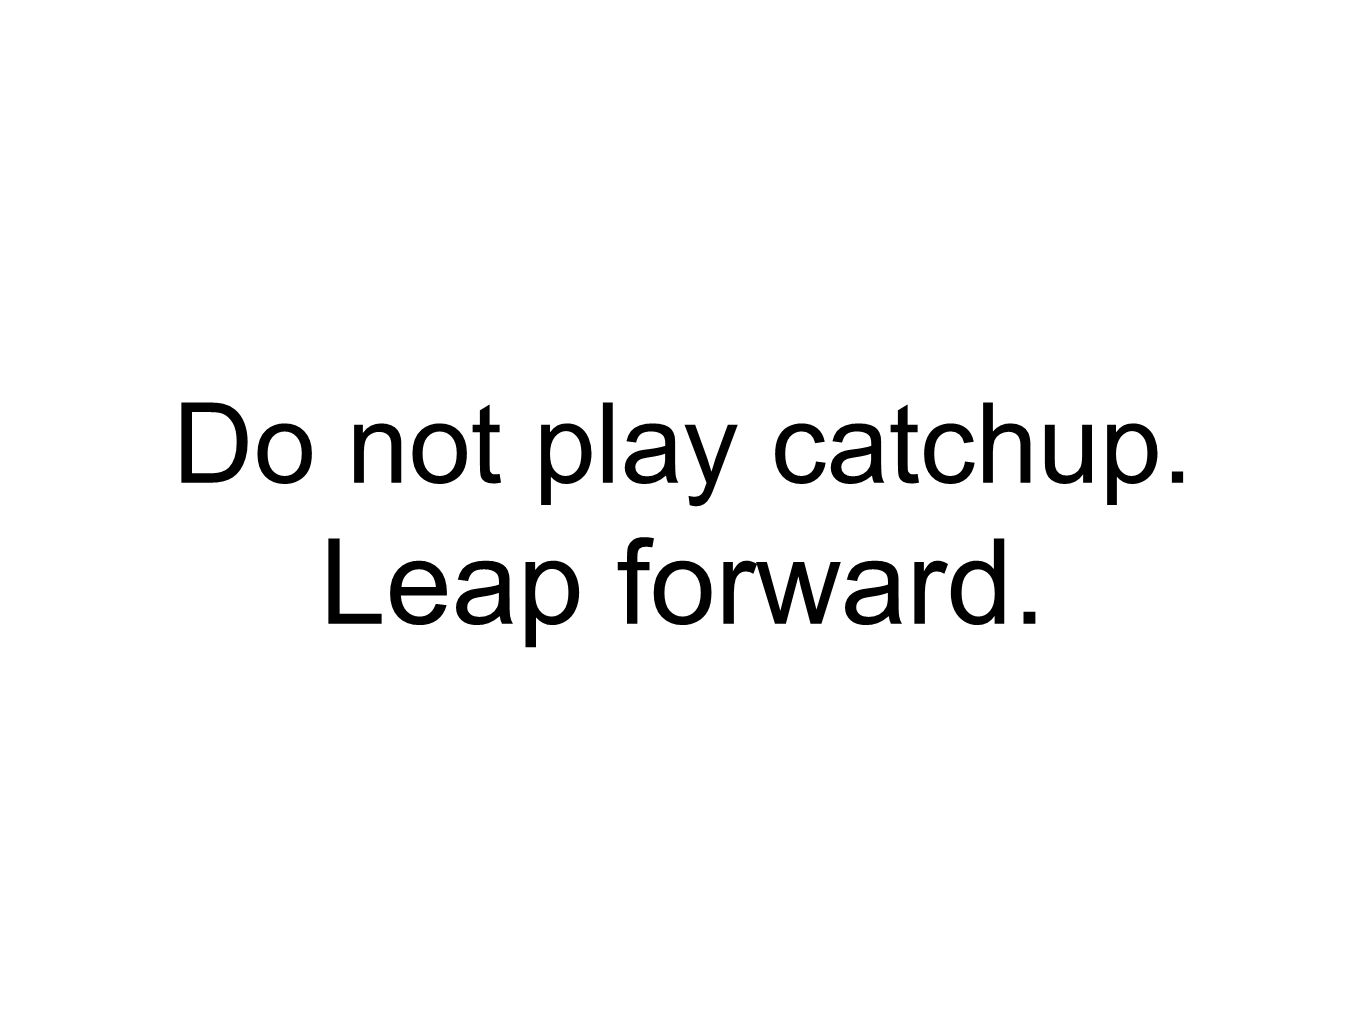 Do not play catchup. Leap forward.